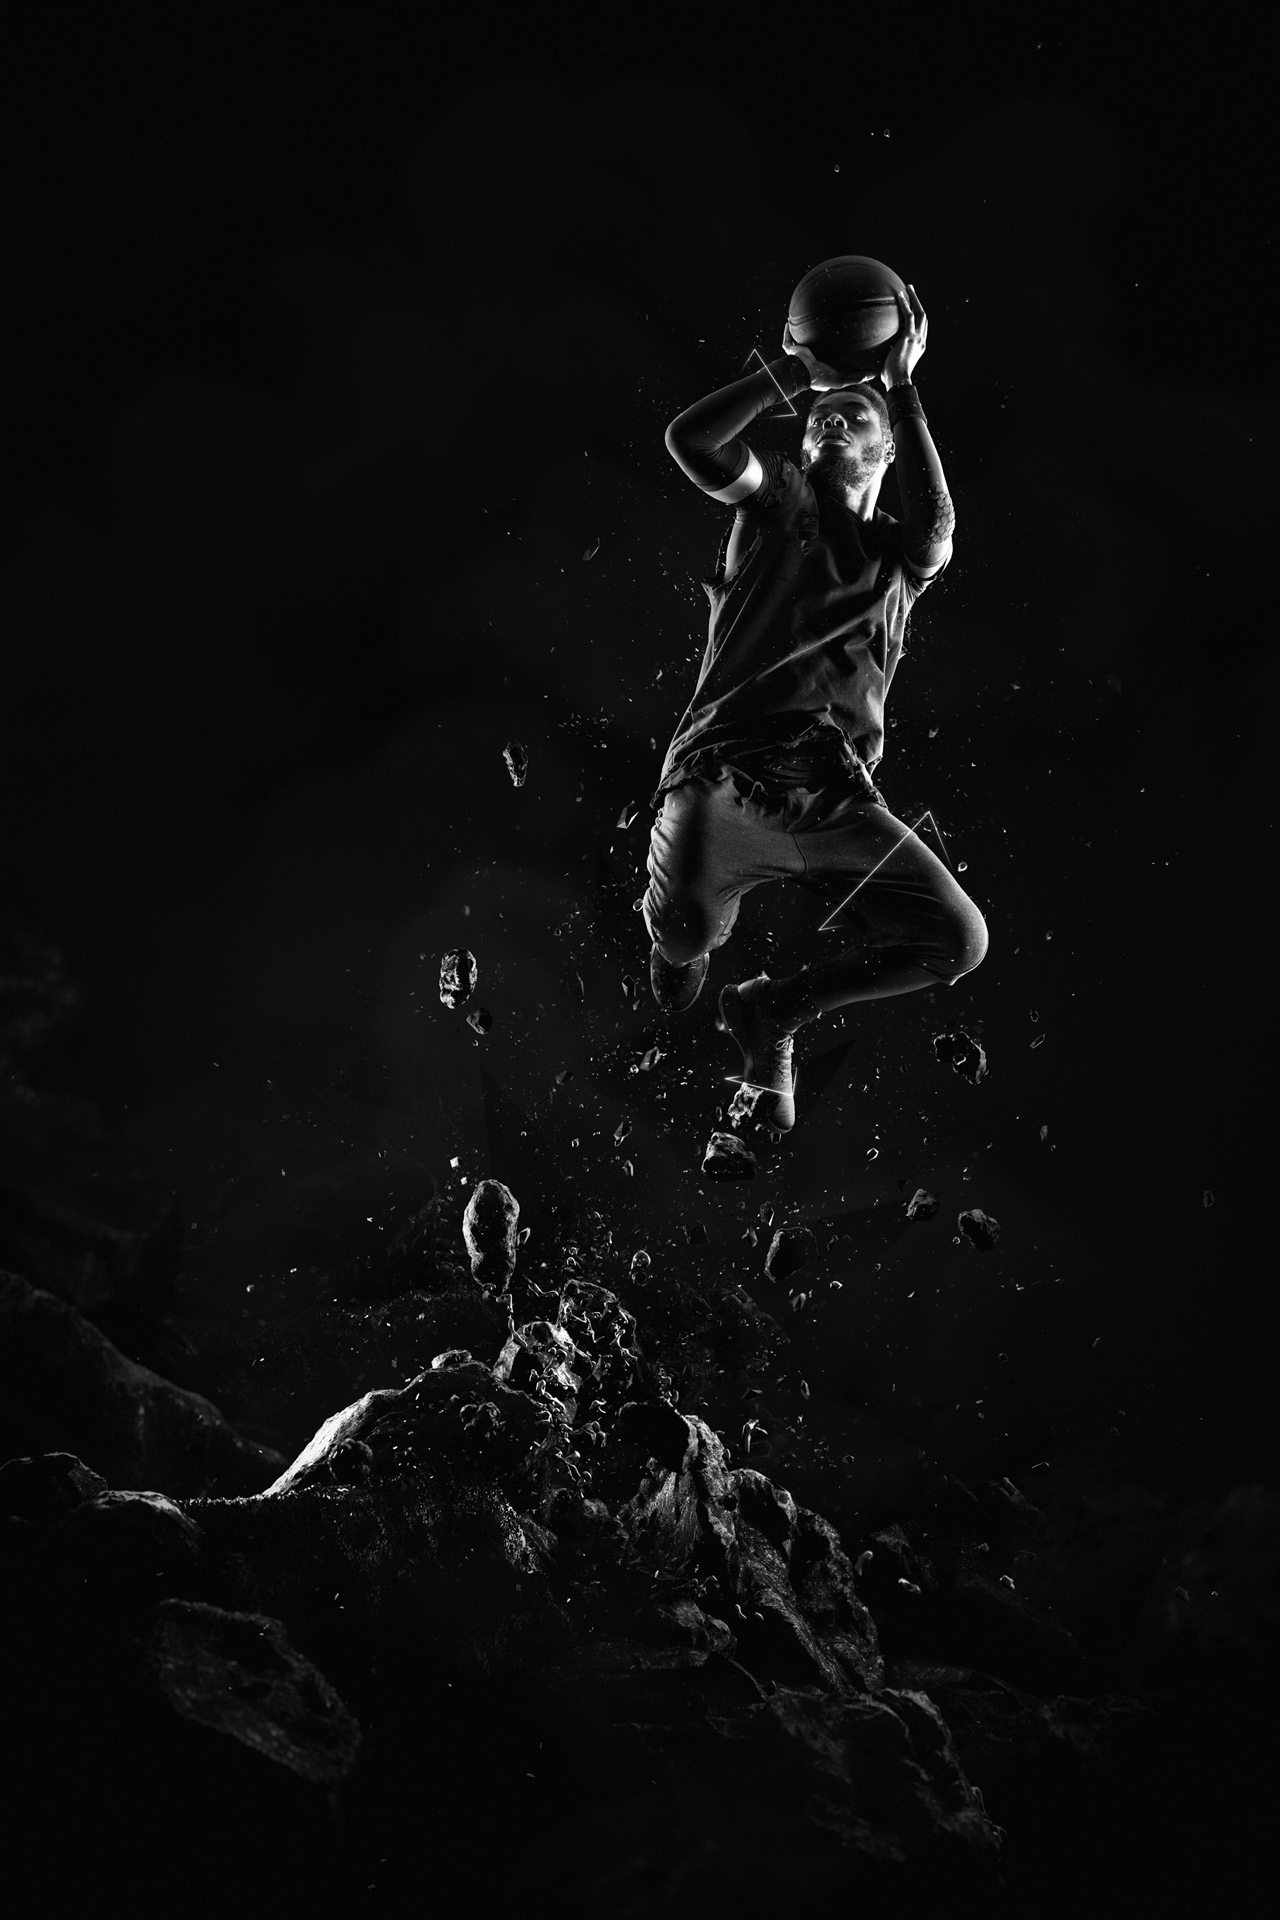 black man posing as basketball player jumping from the ground with debris around basket ball in hand trying to shoot low lighting black and white by Simon Duhamel for W-Hoop